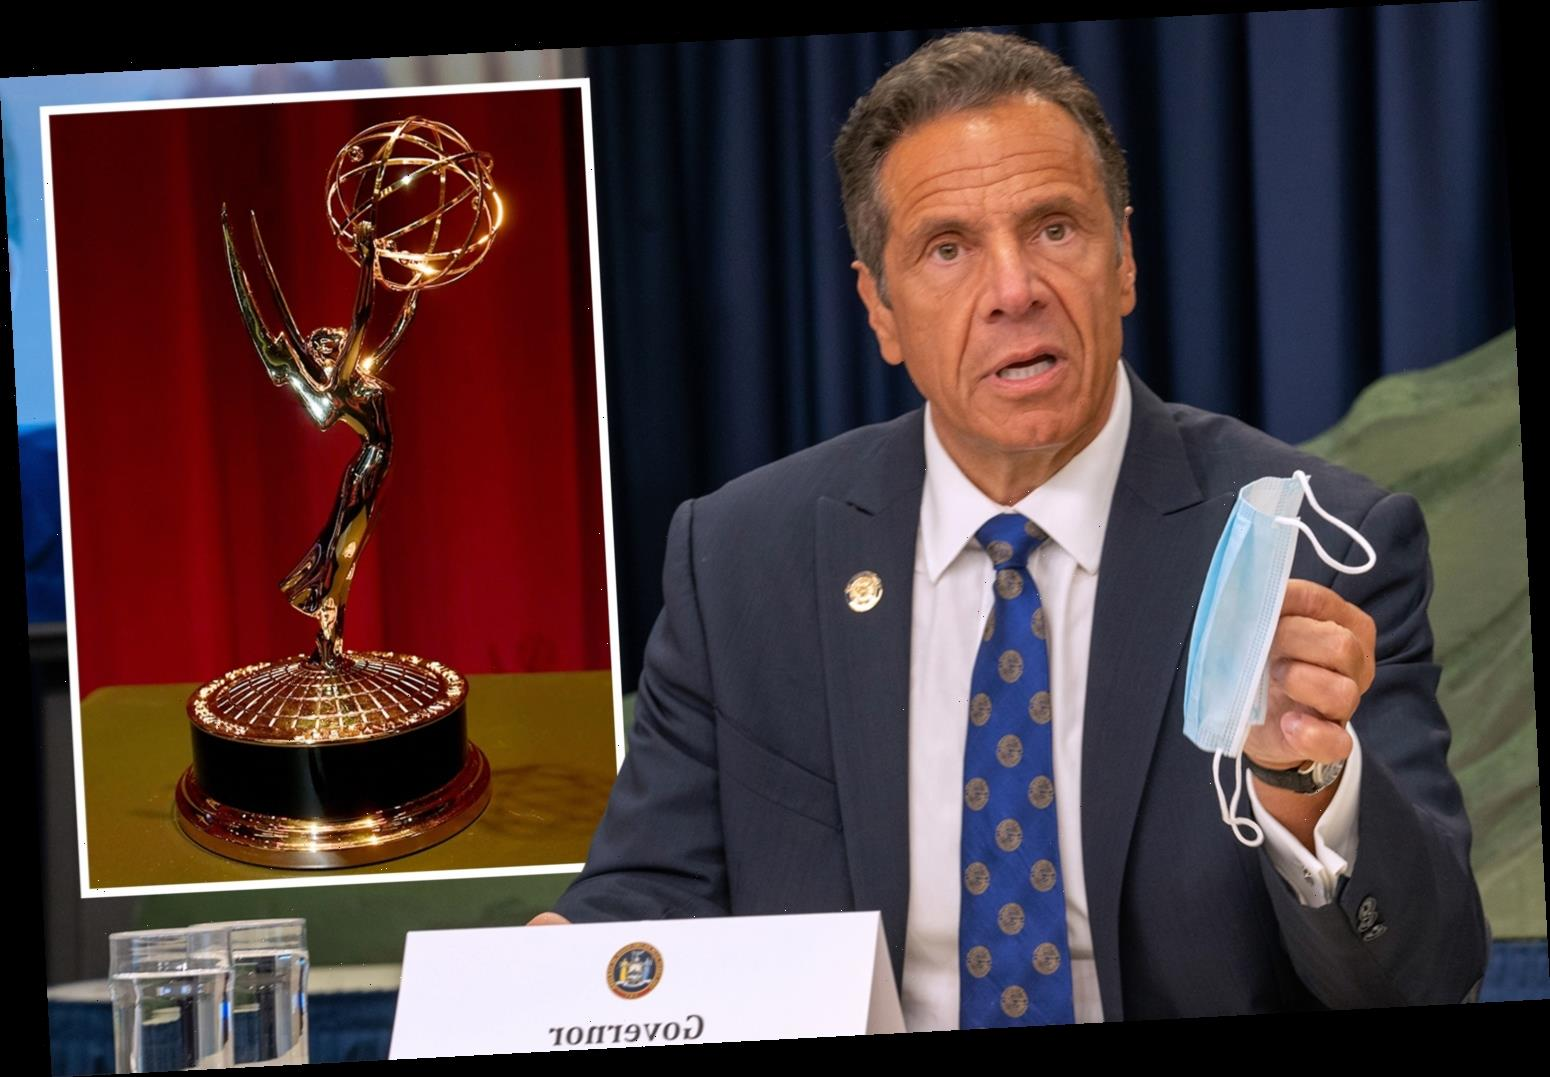 New York Gov Cuomo to bizarrely get Emmy for 'masterful TV' for Covid briefings after backlash over 'leadership' book